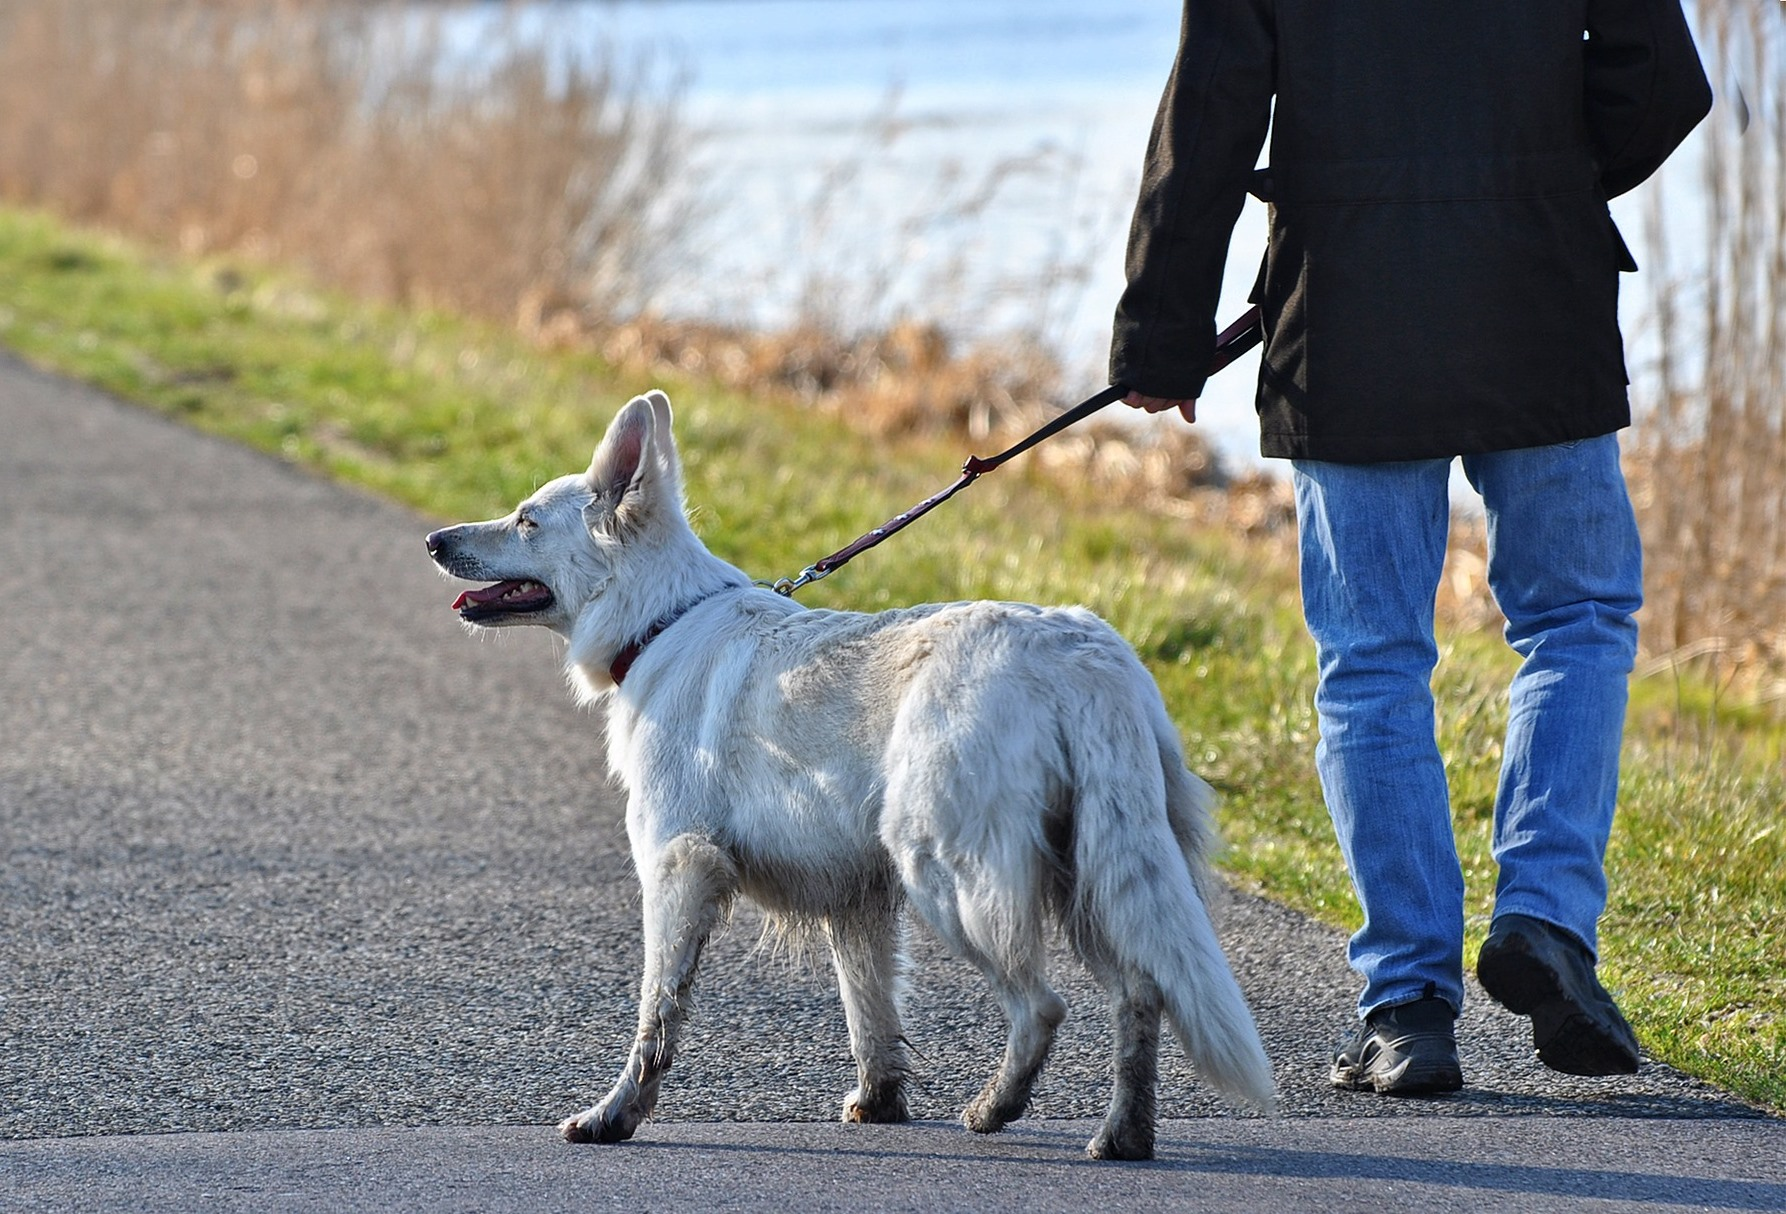 Are Dog Owners More Physically Active and Fitter?